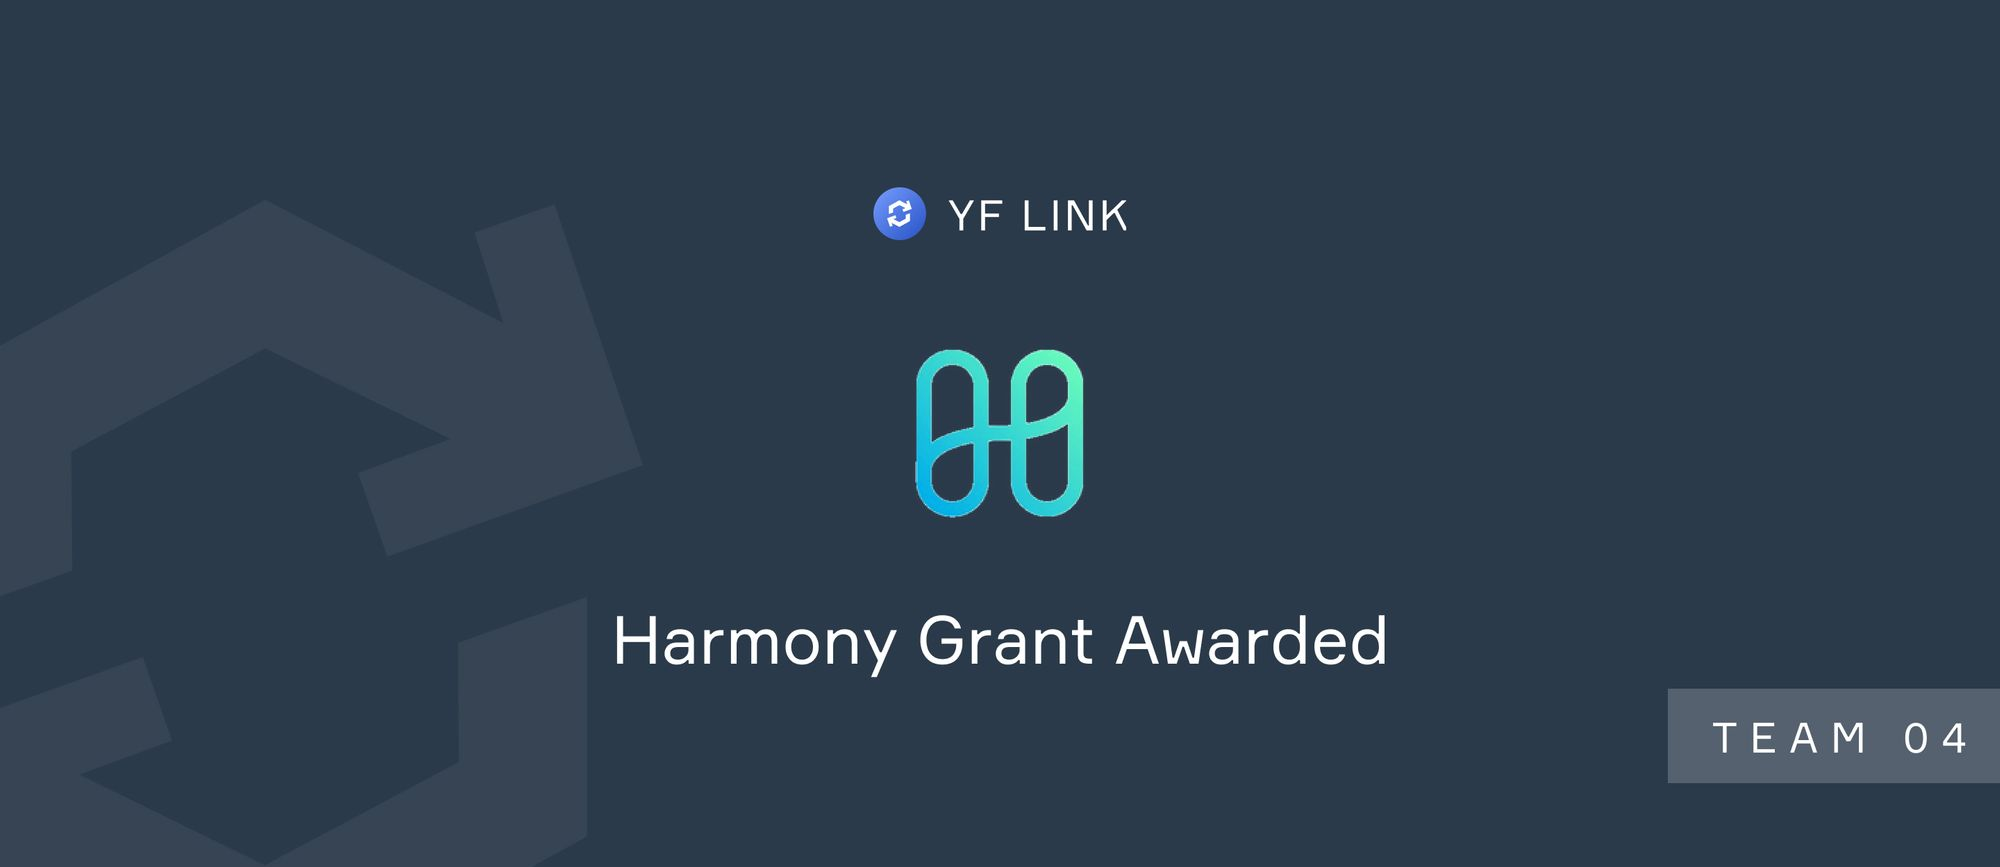 YF Link Awarded Harmony Grant For Dapp Scaling